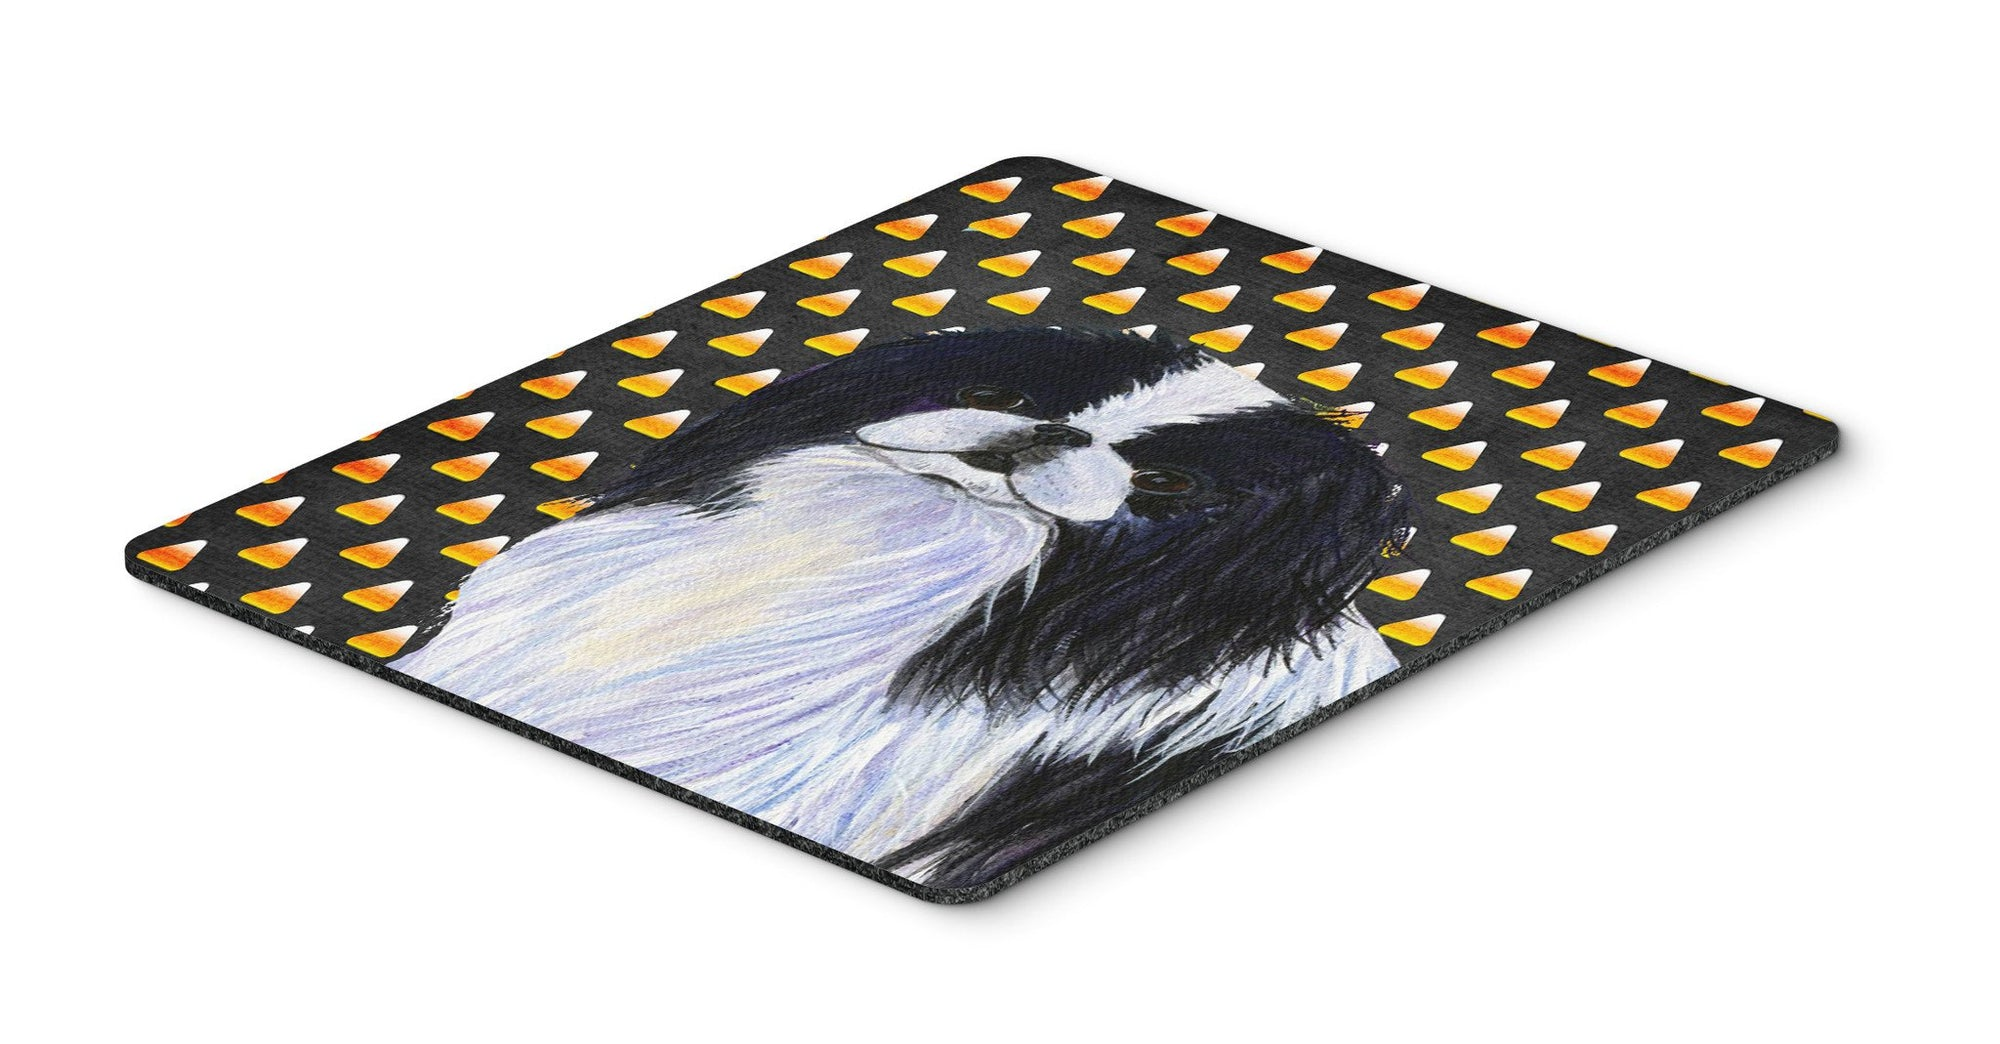 Japanese Chin Candy Corn Halloween Portrait Mouse Pad, Hot Pad or Trivet by Caroline's Treasures